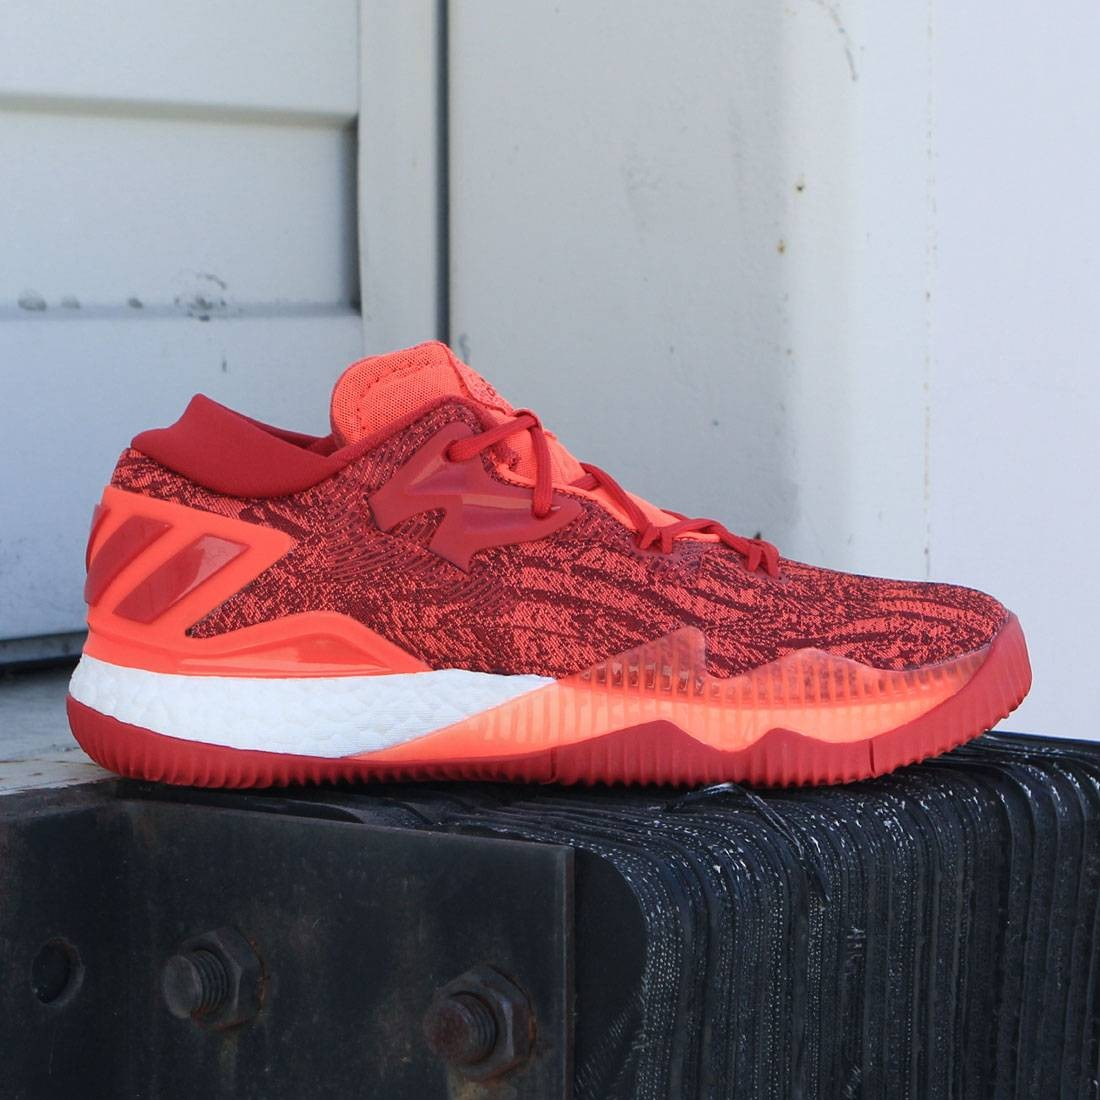 Adidas Men Crazylight Boost Low Red Solar Red Scarlet